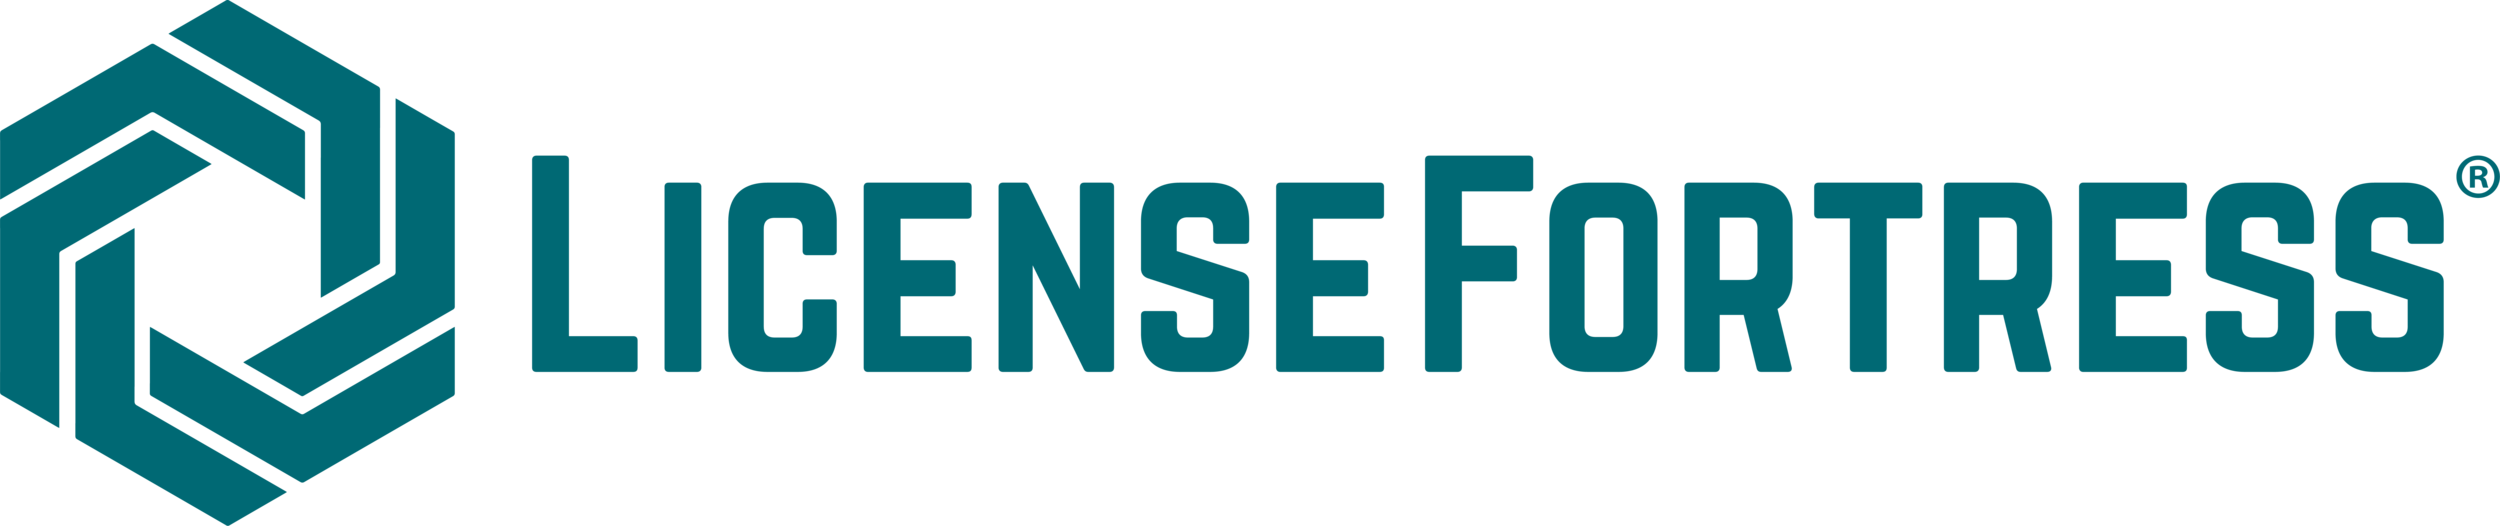 LicenseFortress transparent logo